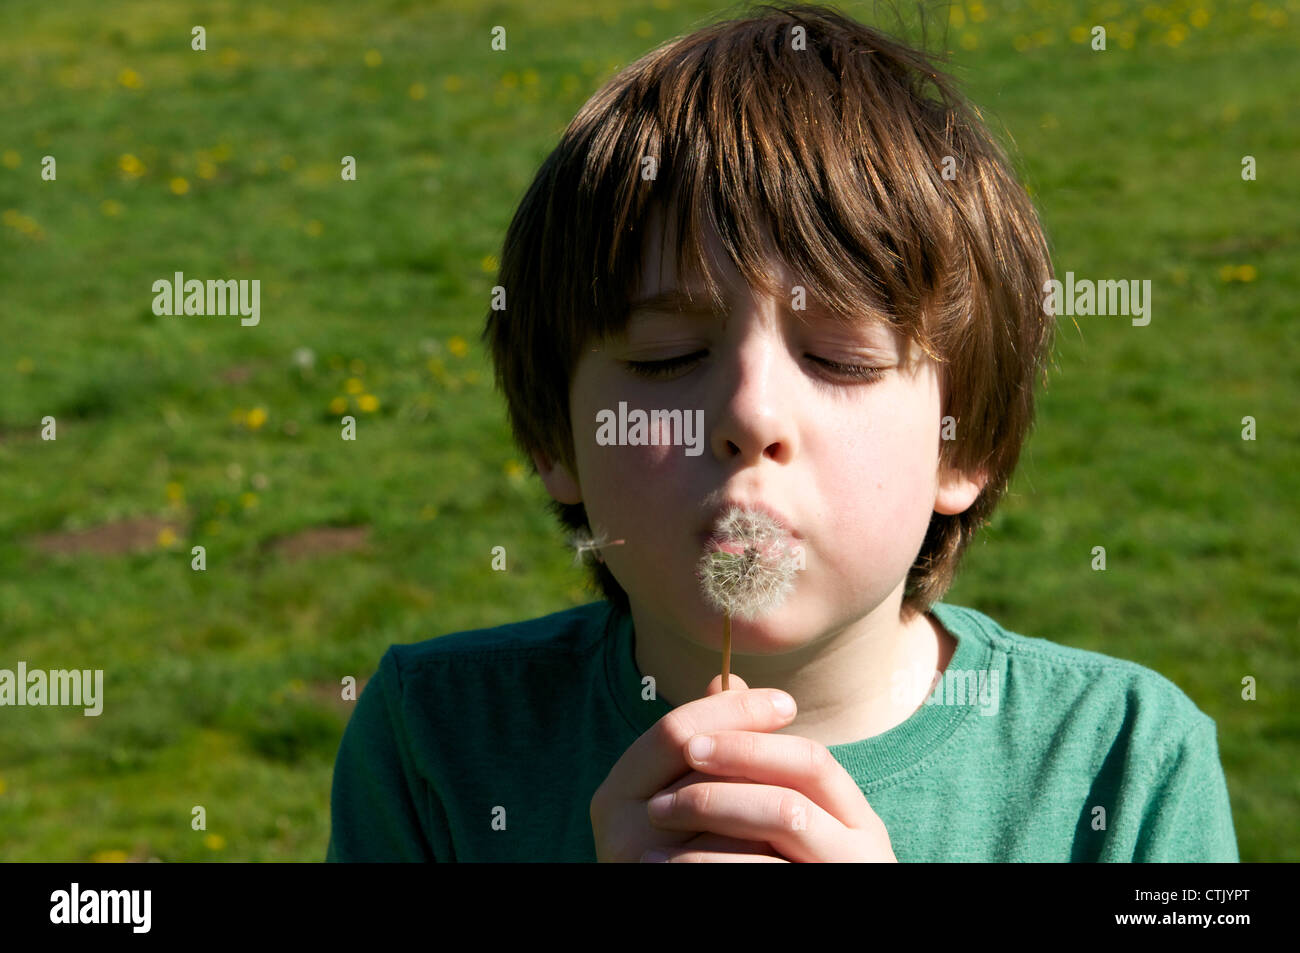 Boy makes a wish by blowing dandelion seeds - Stock Image